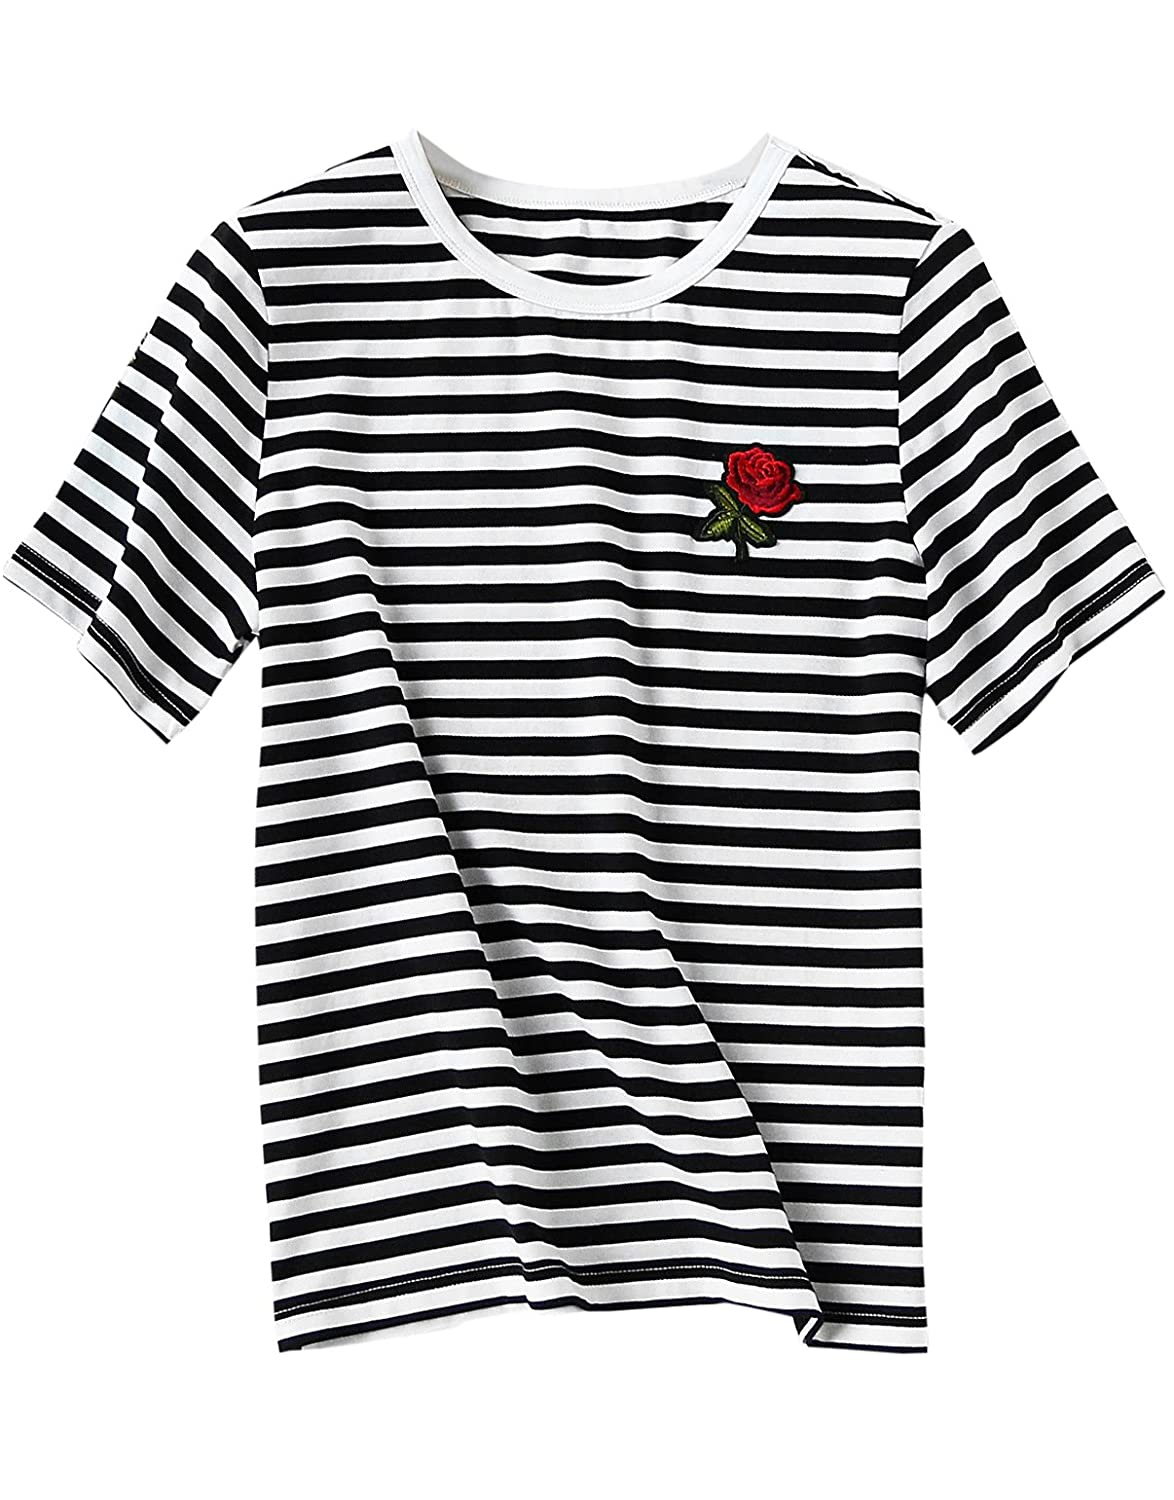 55a03c9e Amazon.com: Romwe Women's Summer Short Sleeve Striped Tee Cotton T-Shirt:  Clothing